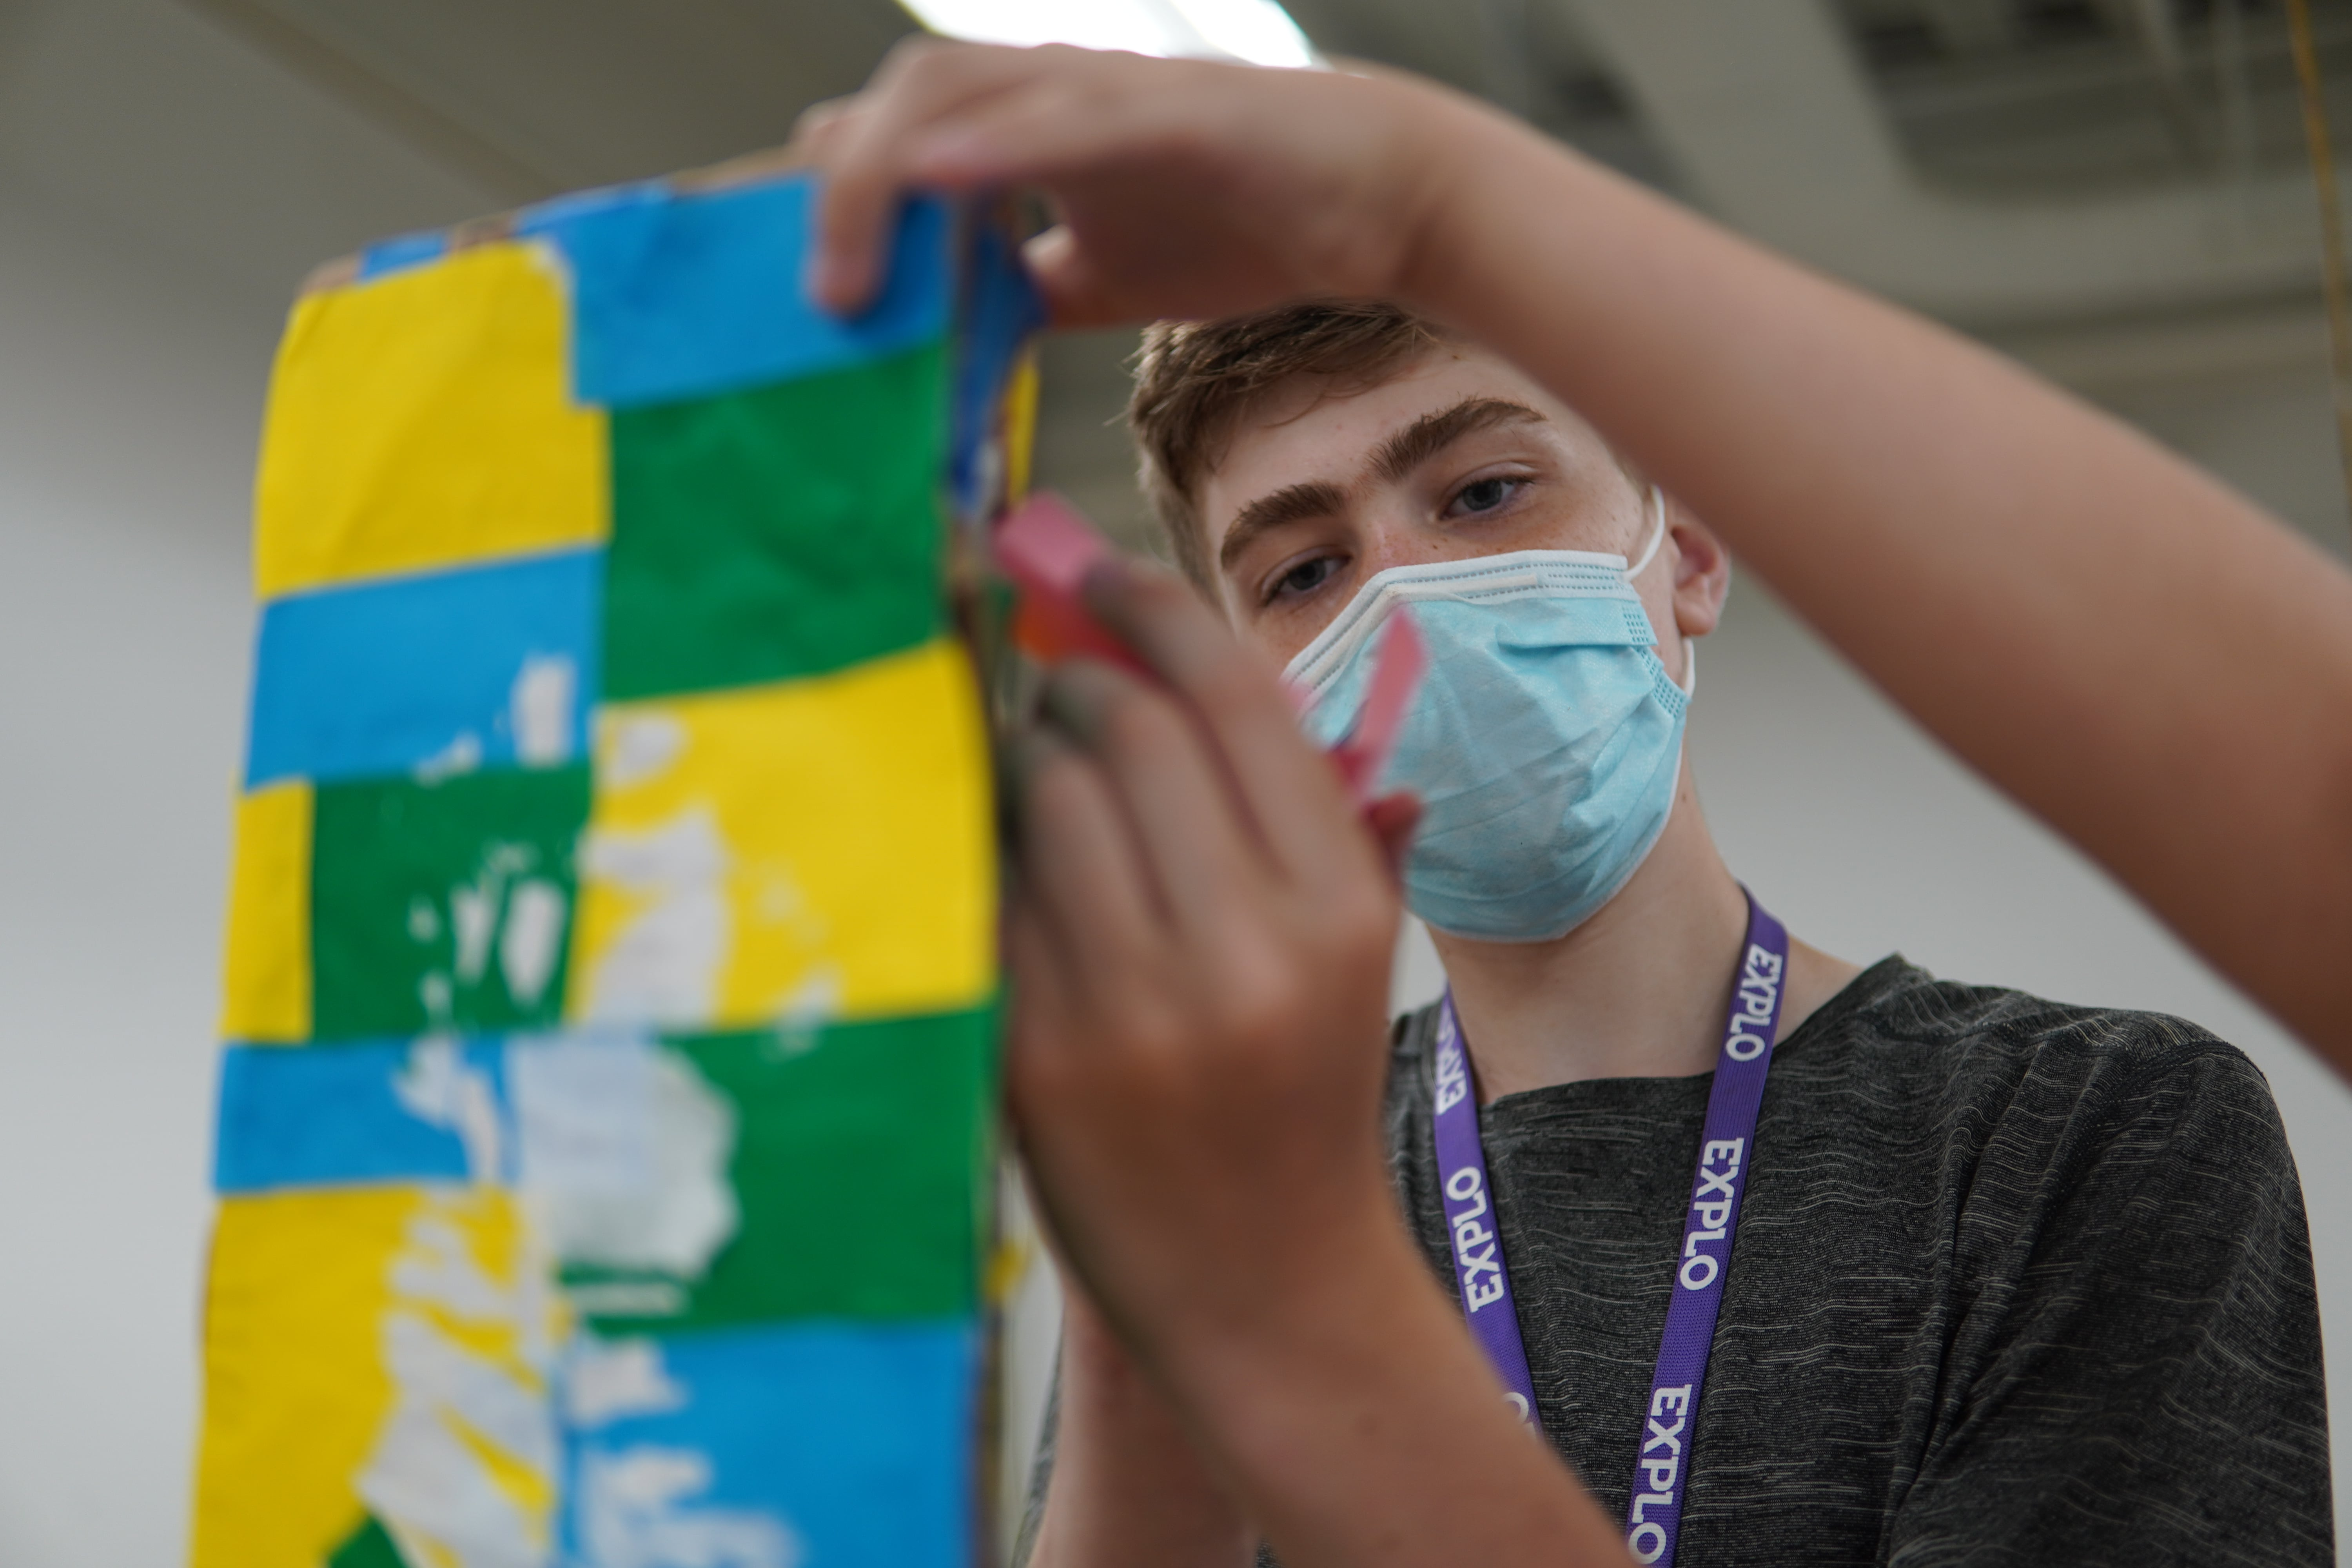 A student in a gray t-shirt focuses on building a papered roller coaster model while the hands of his teammates frame his face.